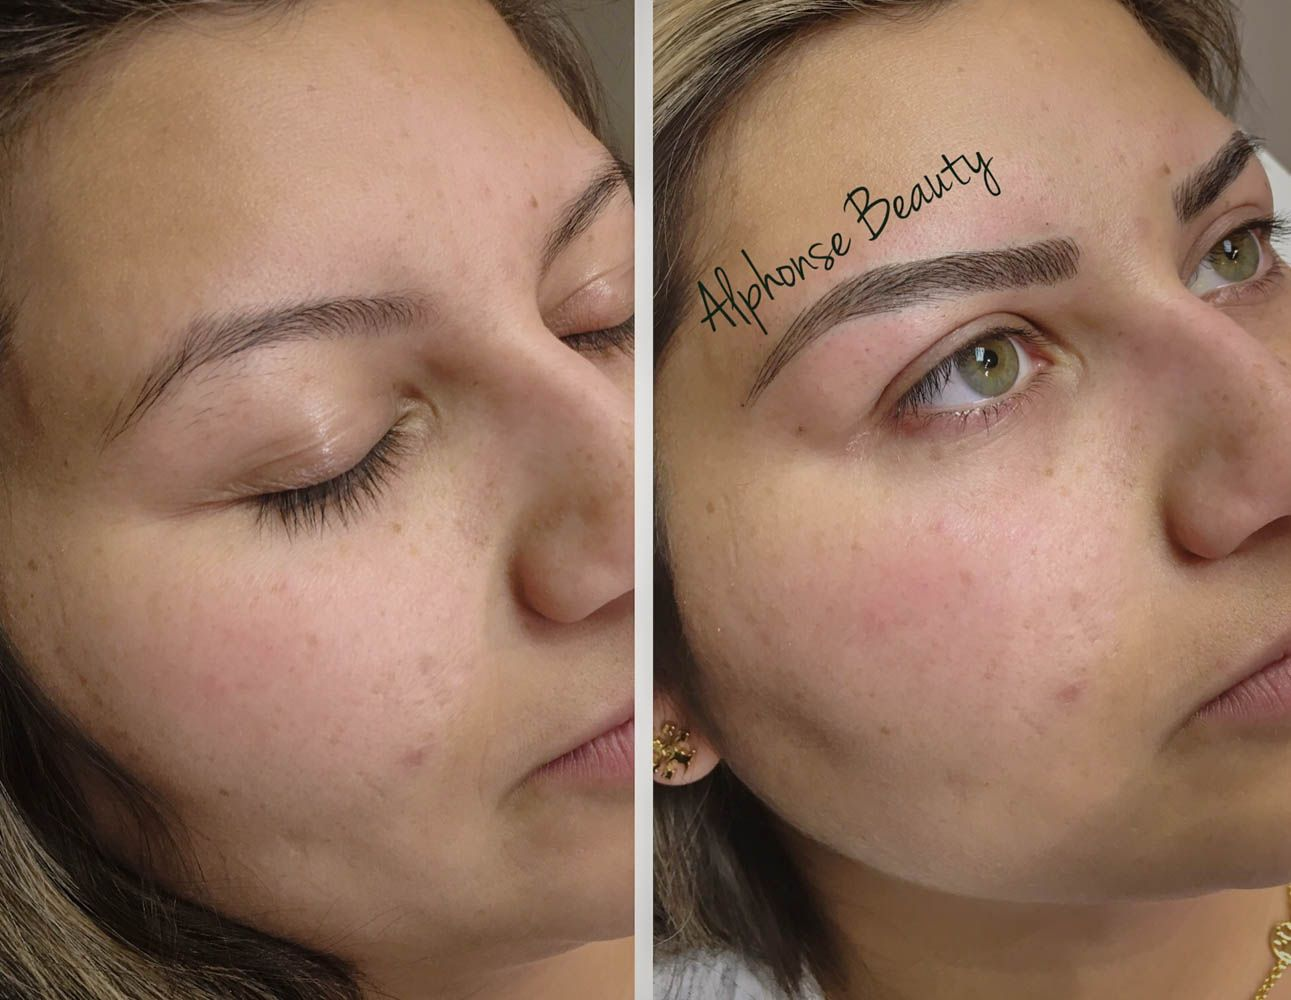 3D Brows Before and After Results